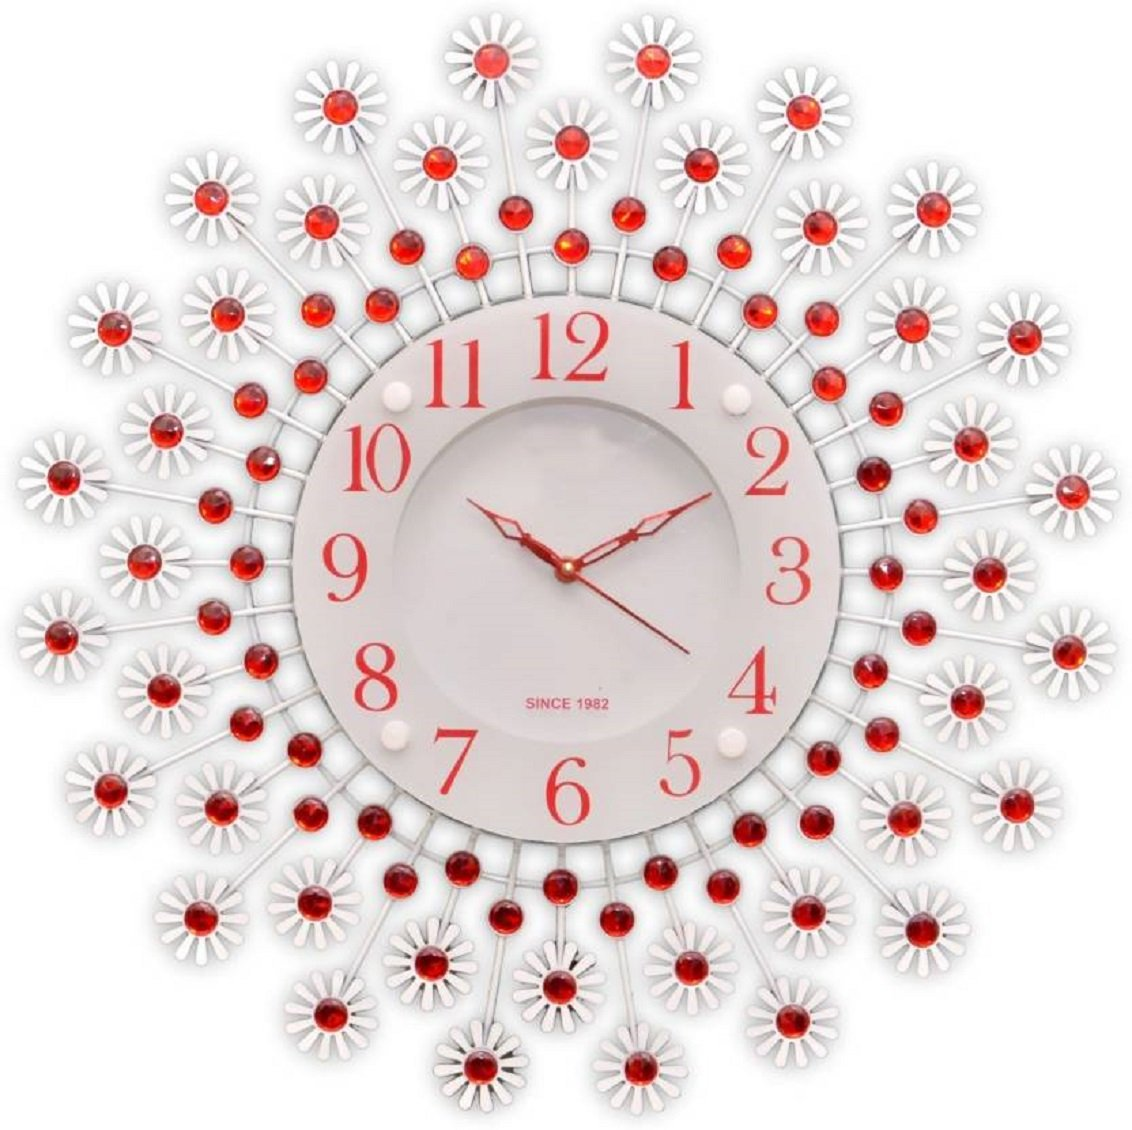 Degosh Circular Analog Red&White Metal Glass Wall Clock